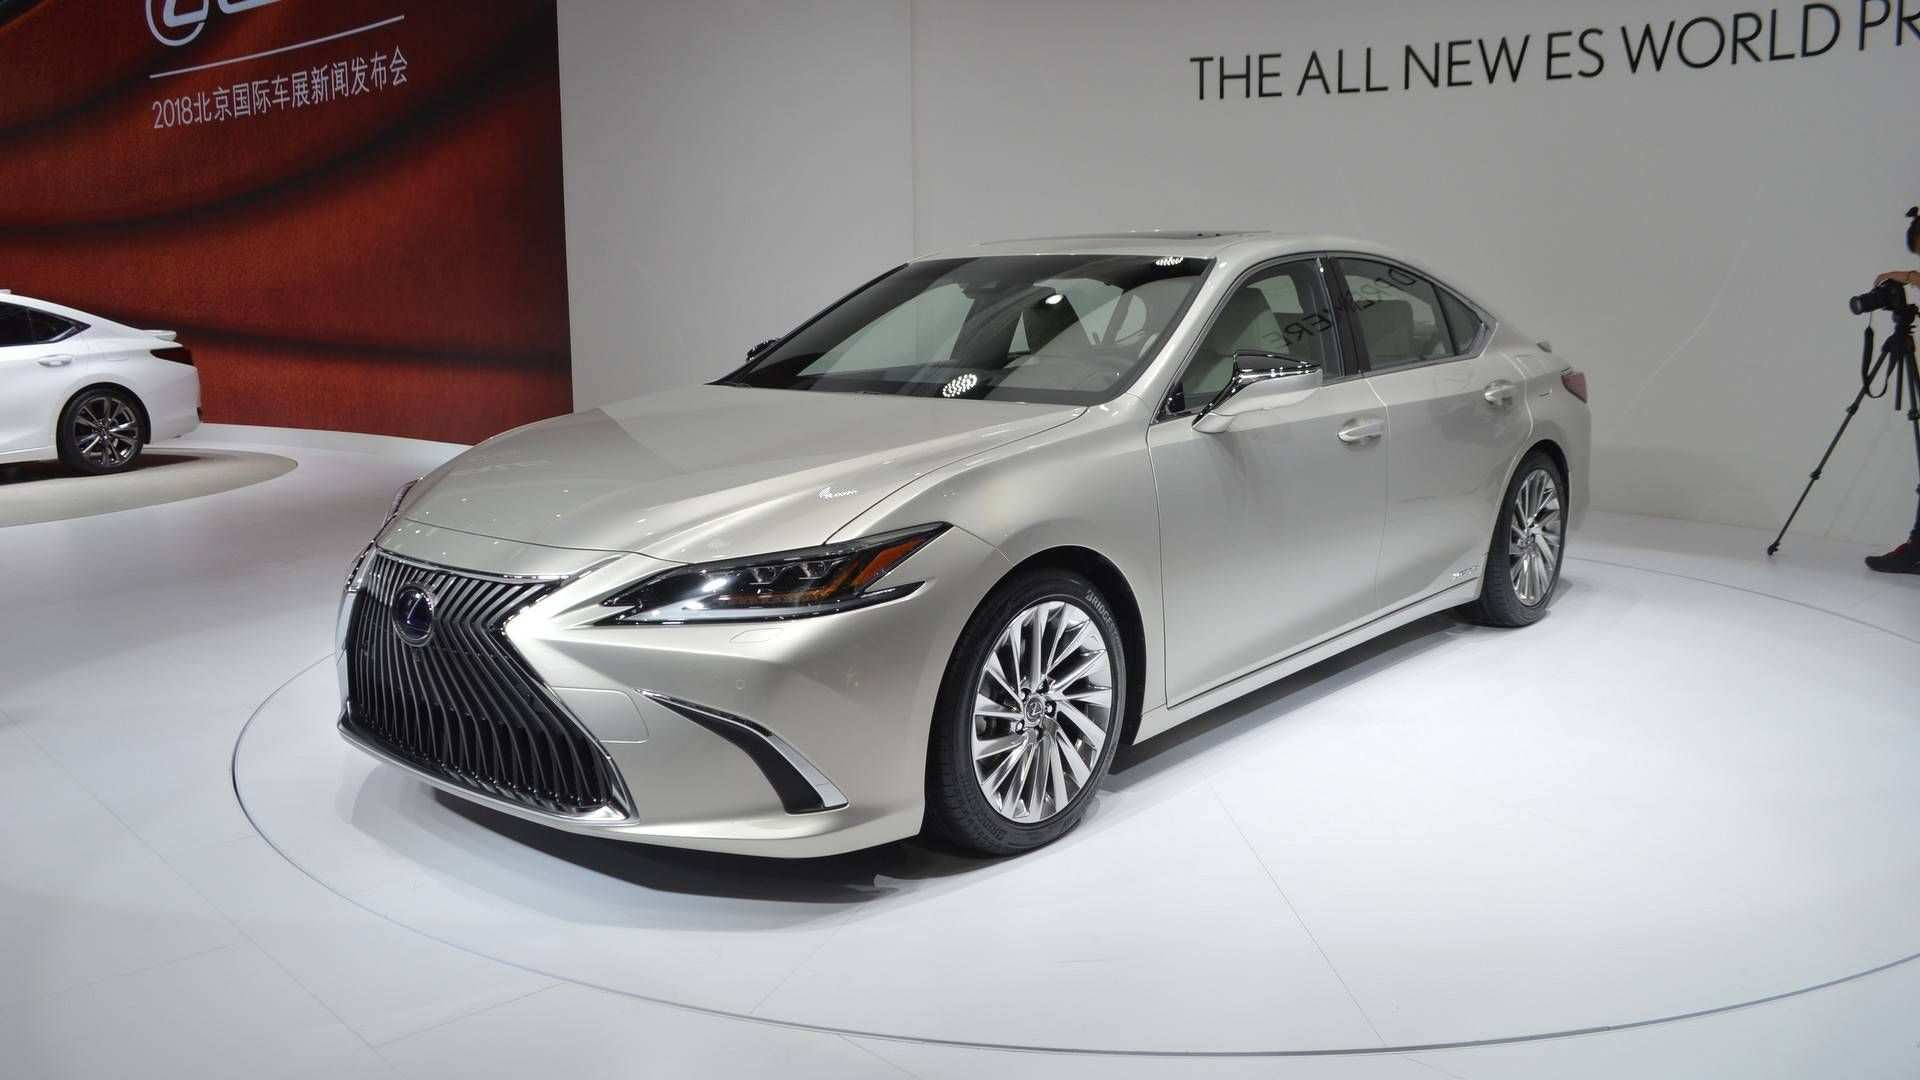 45 All New When Will The 2019 Lexus Be Available New Engine Model with When Will The 2019 Lexus Be Available New Engine